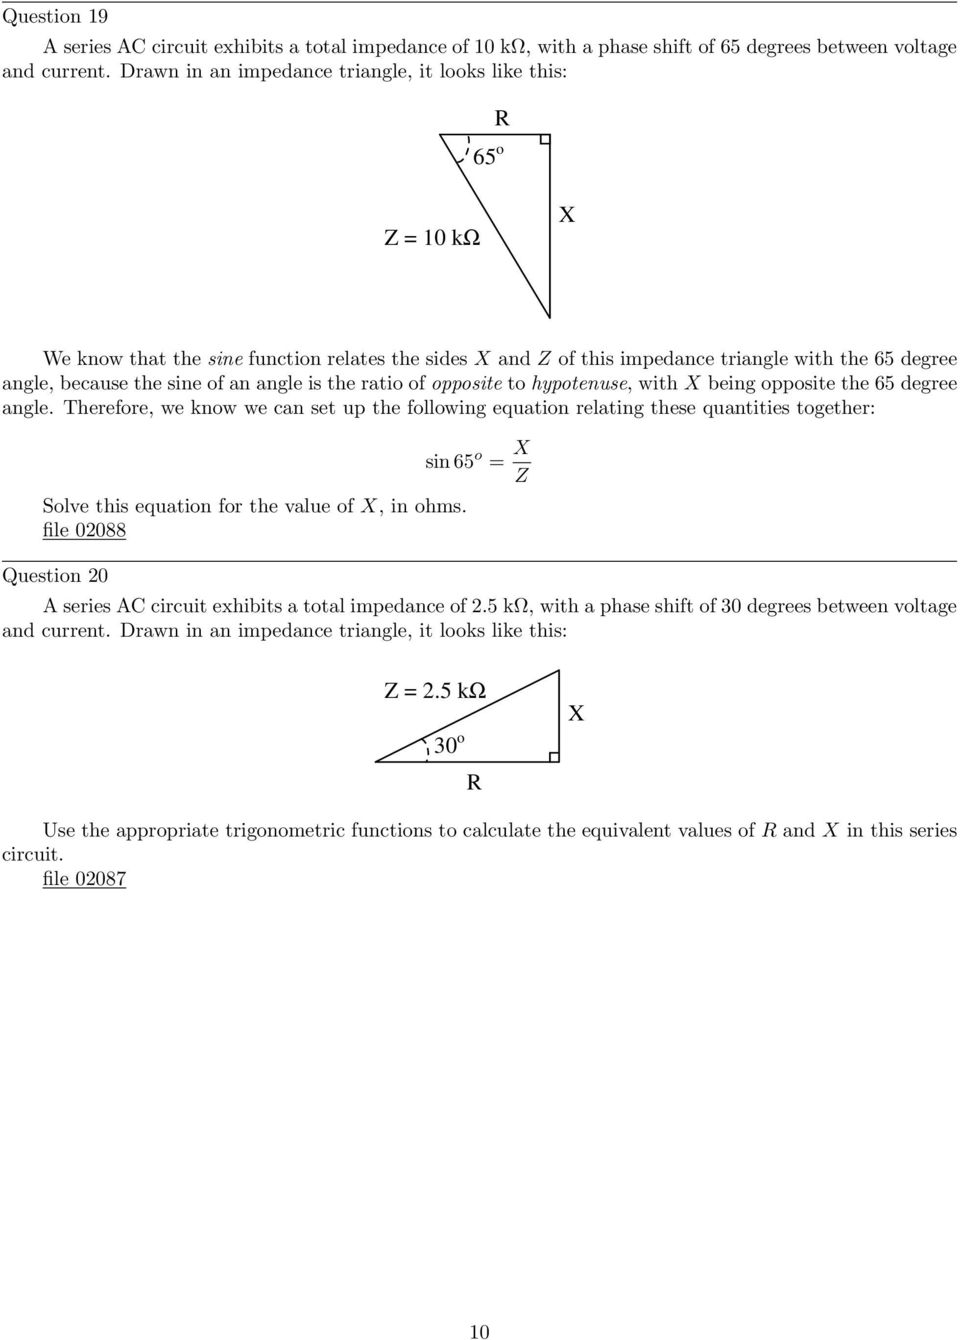 Trigonometry For Ac Circuits Pdf Circuit Dummies Is The Ratio Of Opposite To Hypotenuse With Being 65 Degree Angle